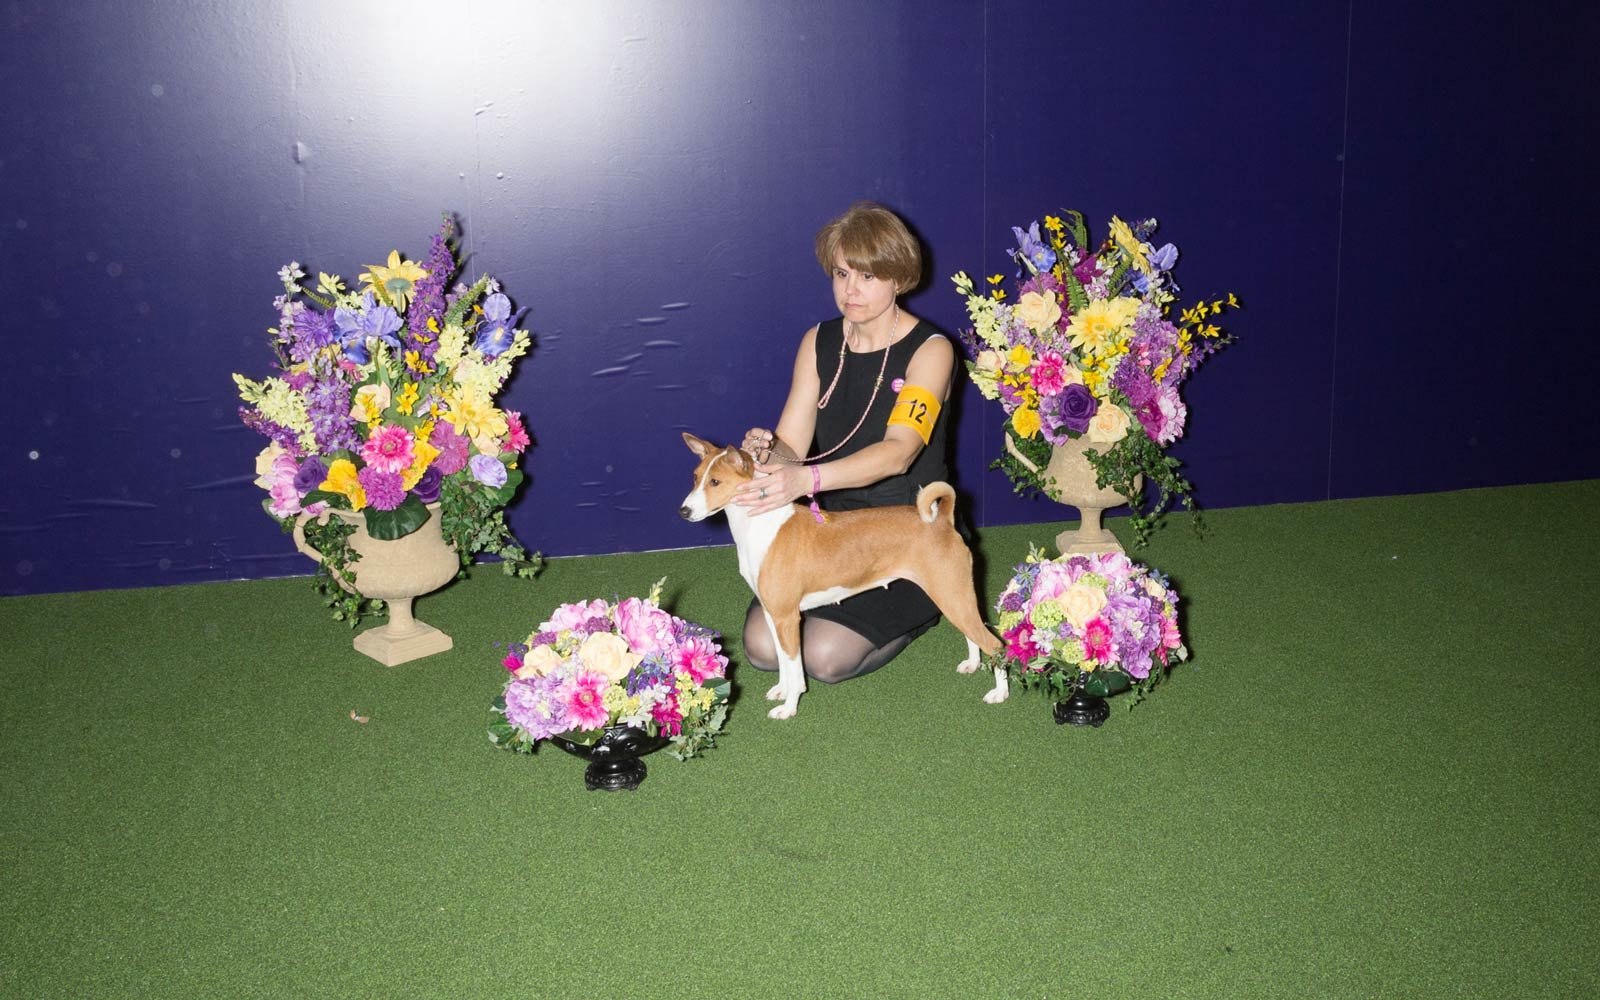 141st Westminster Kennel Club Dog Show